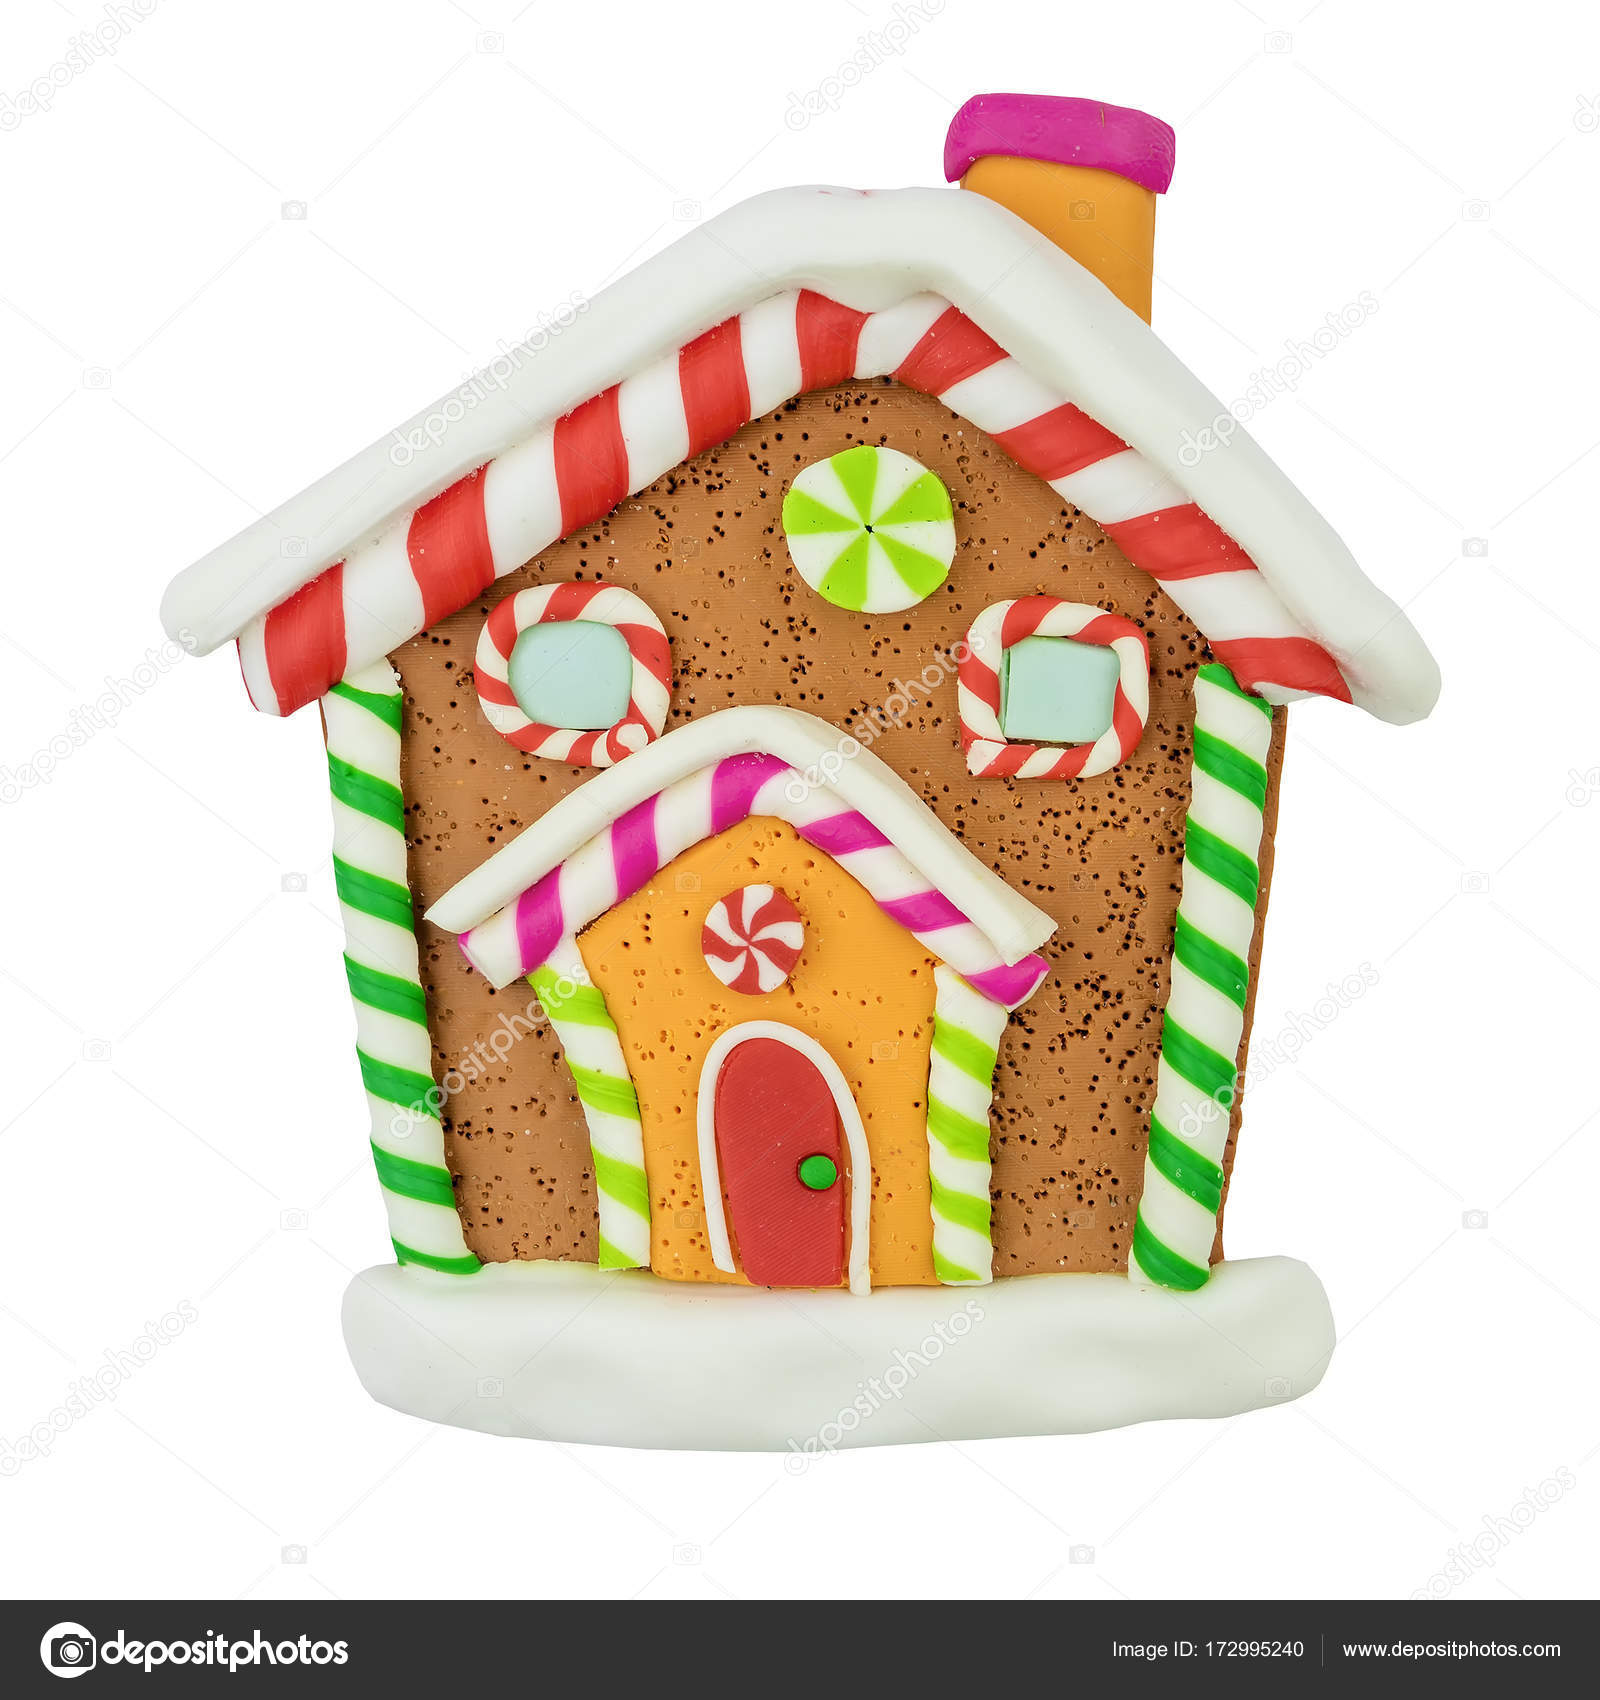 Christmas Gingerbread House Background.Christmas Gingerbread House On White Background Stock